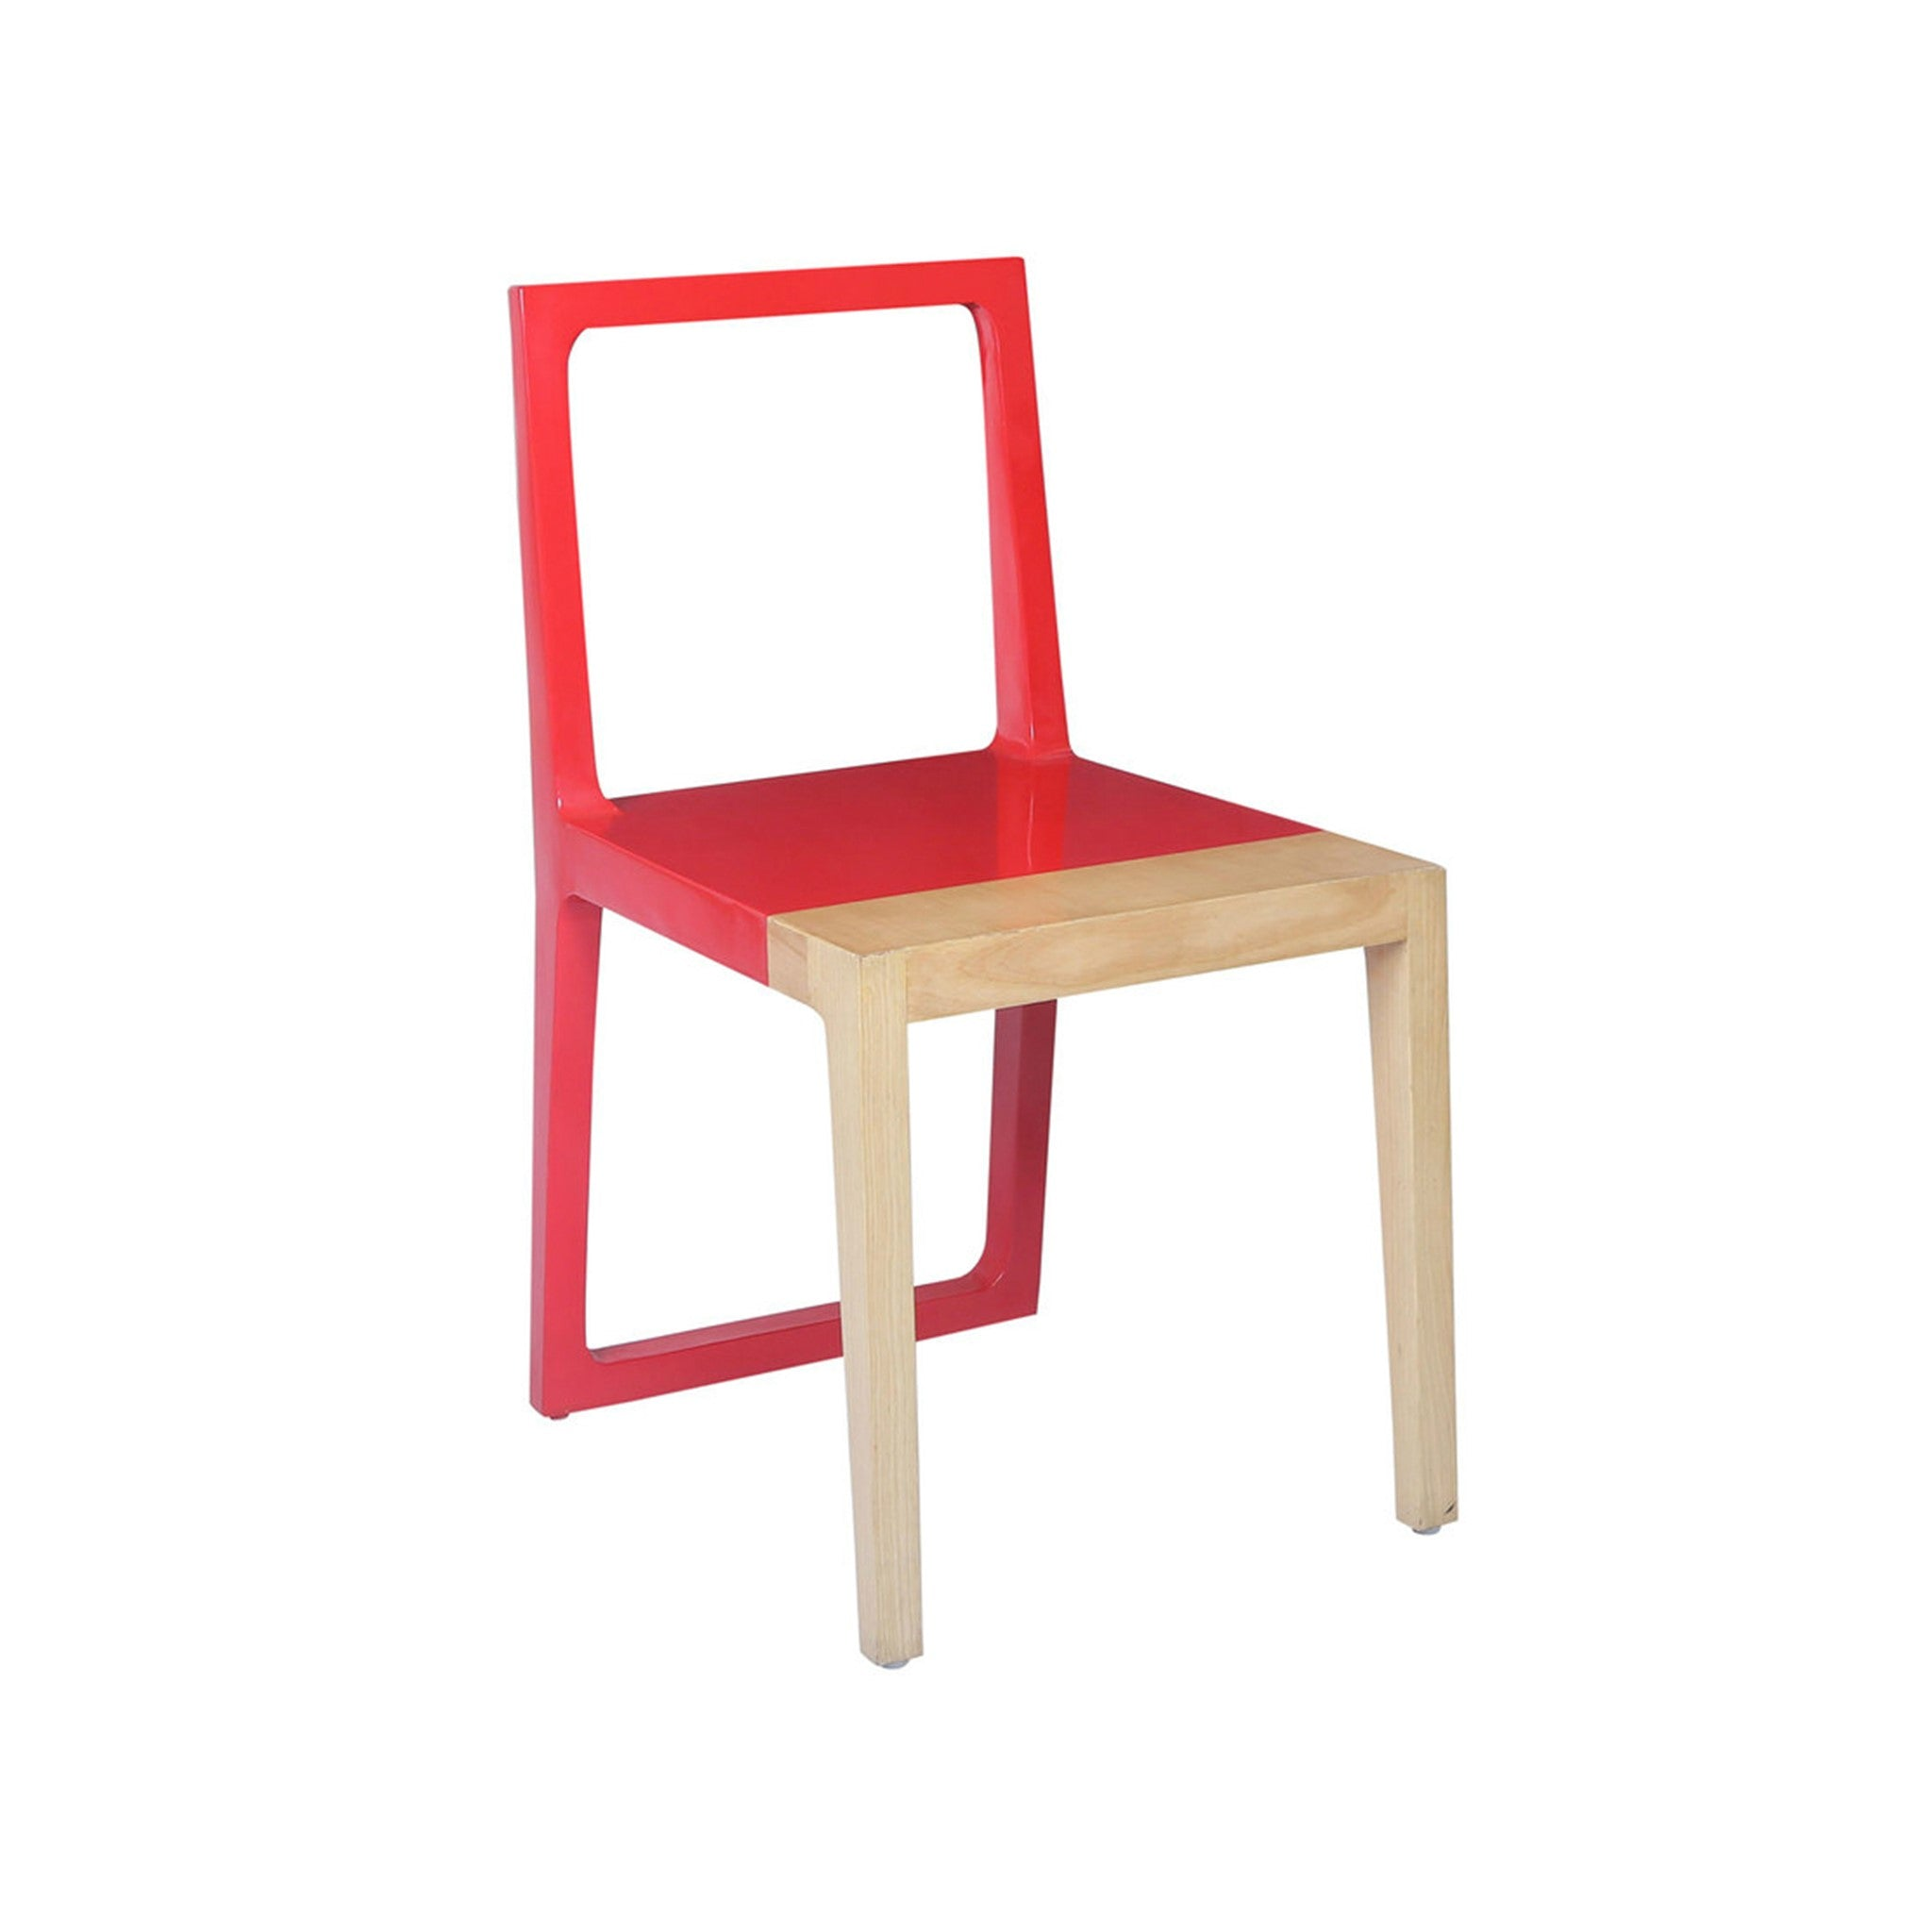 Partial Colour Scandinavian Design Teak Chair in Lacquered Red